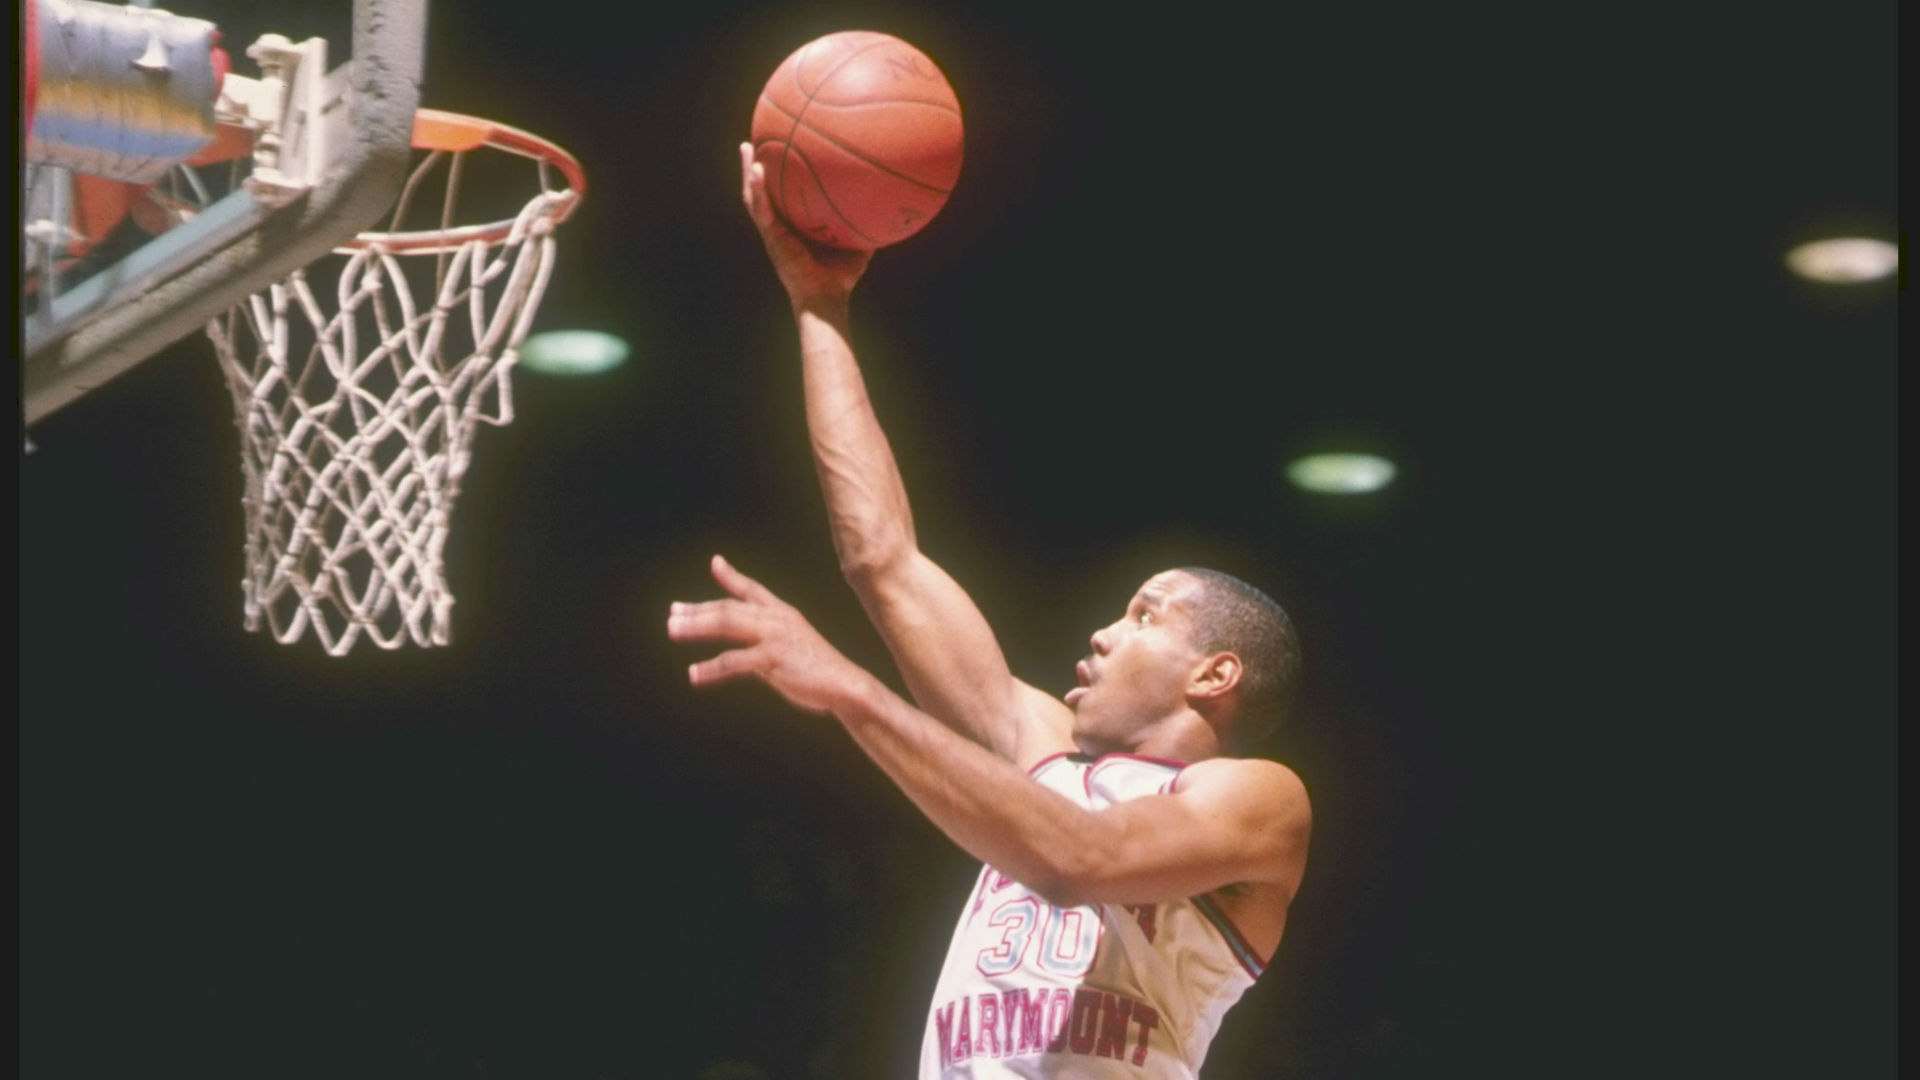 Bo Kimble says playing for Clippers caused him to consider suicide